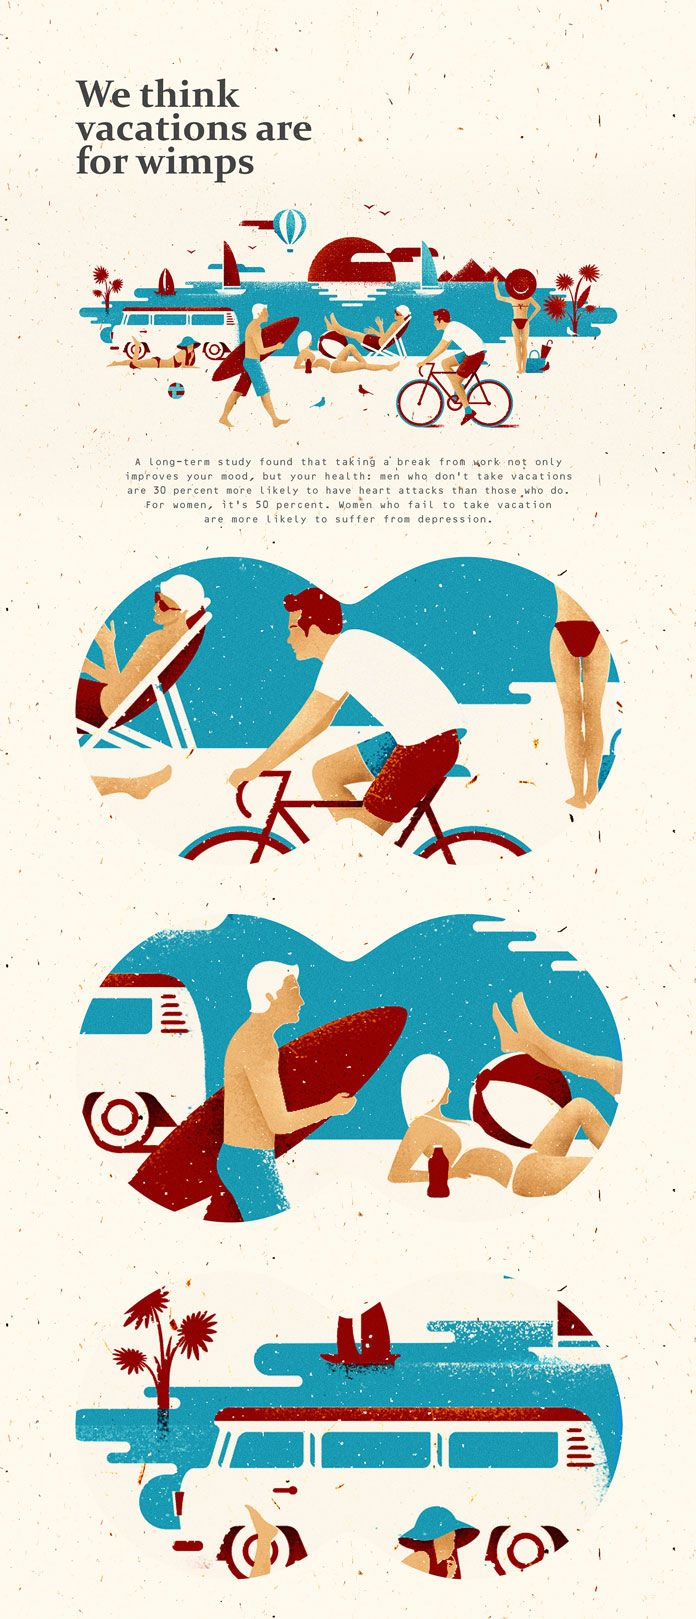 Not these colors but the types activities and style and detail of figures.  (Beach illustrations | Editorial illustrations by Andriy Muzichka)